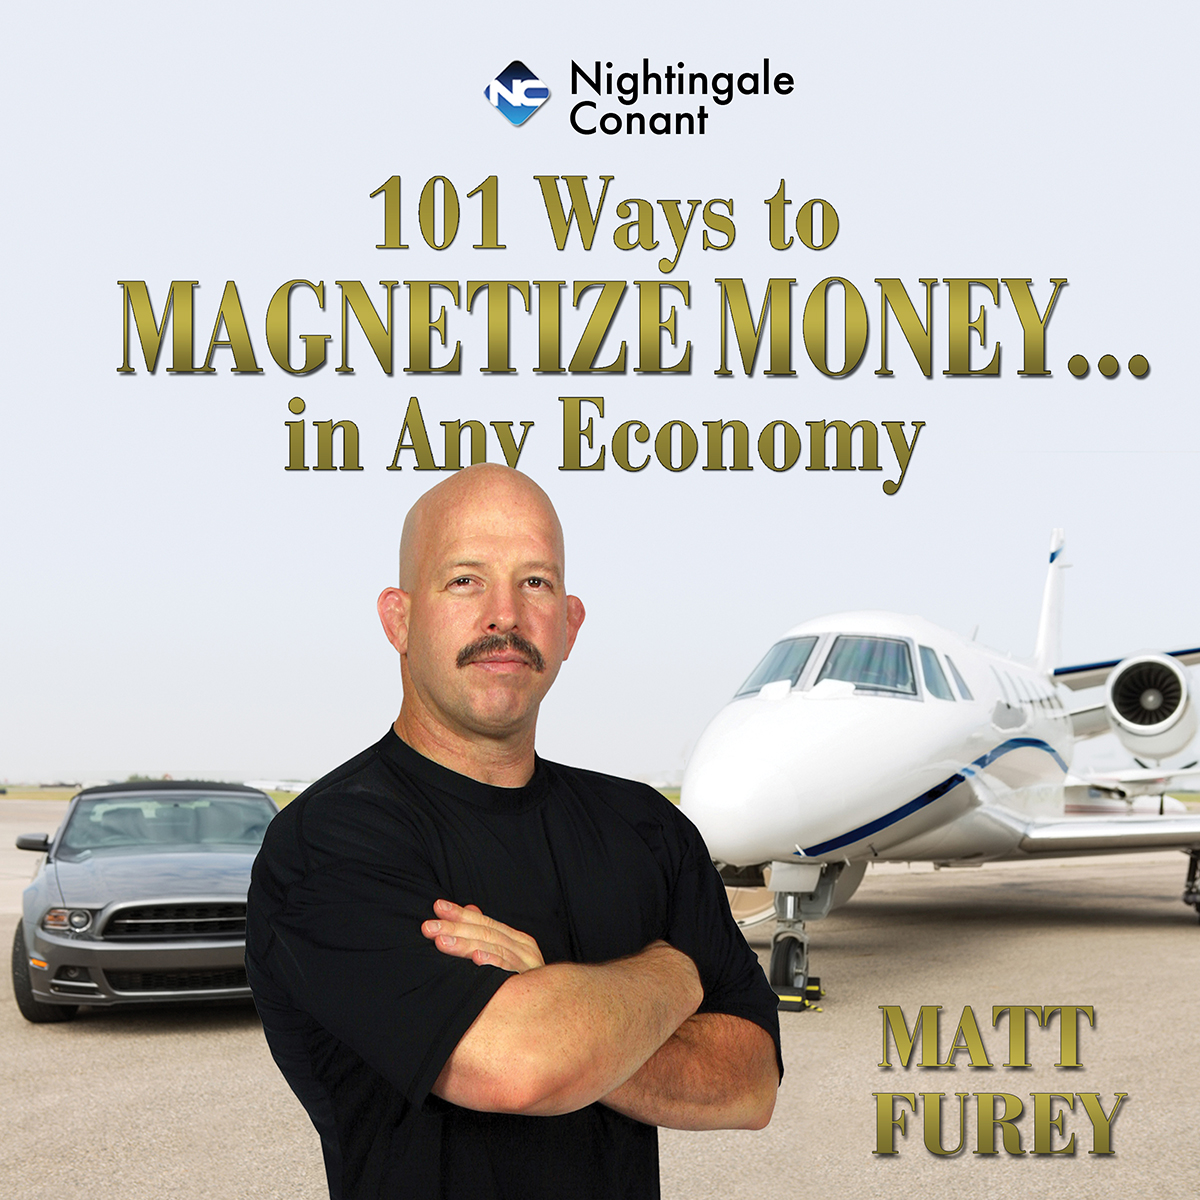 101 Ways to Magnetize Money… in Any Economy